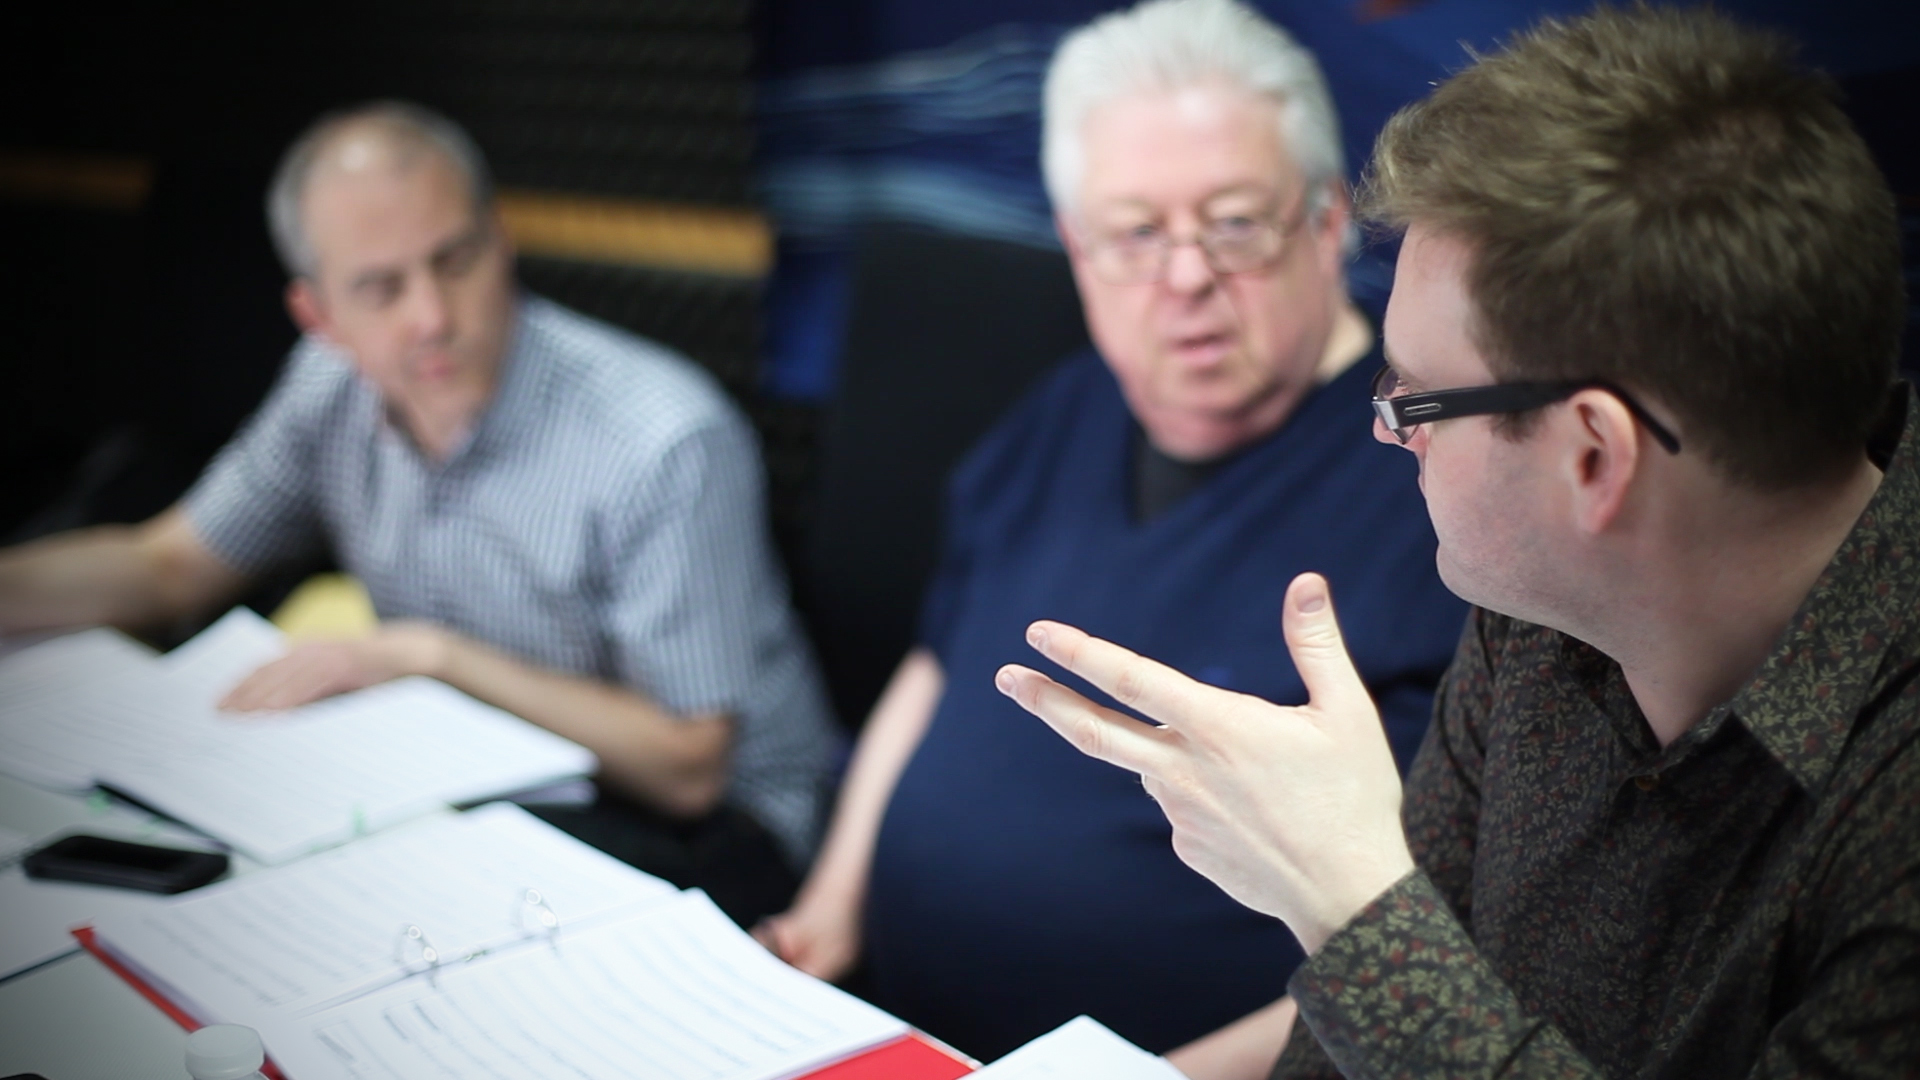 From right to left: Shea Lolin, Gary Carpenter and Christopher Hussey listening carefully to the takes of Twisted Skyscape at Smecky Studios for the first ever commercially recording of a woodwind orchestra.